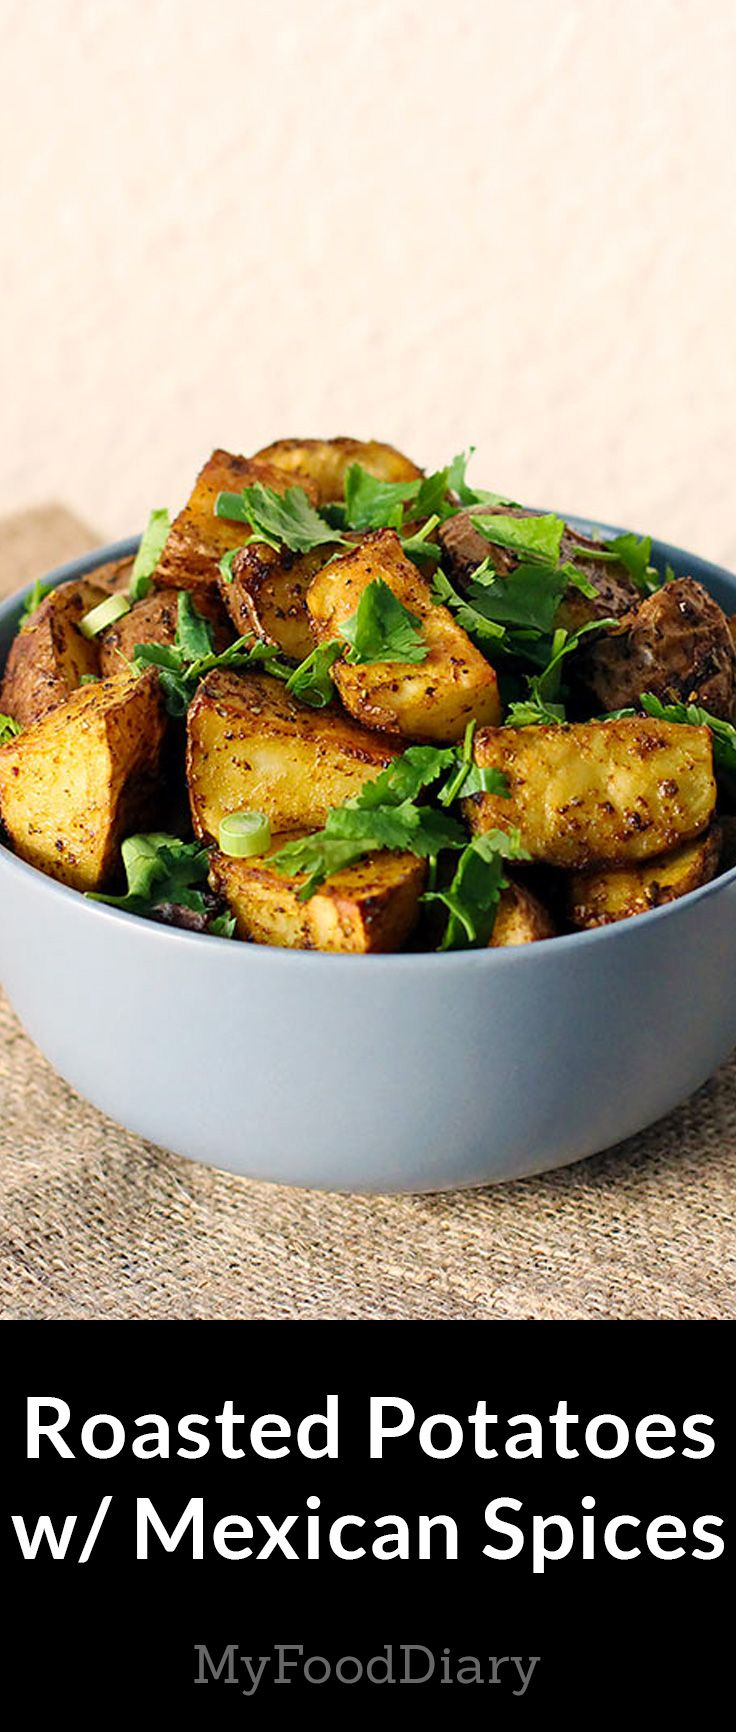 Potatoes have the reputation of being an unhealthy food, but when you remove the fat and salt often used in preparing them, their valuable nutrients have a chance to shine.